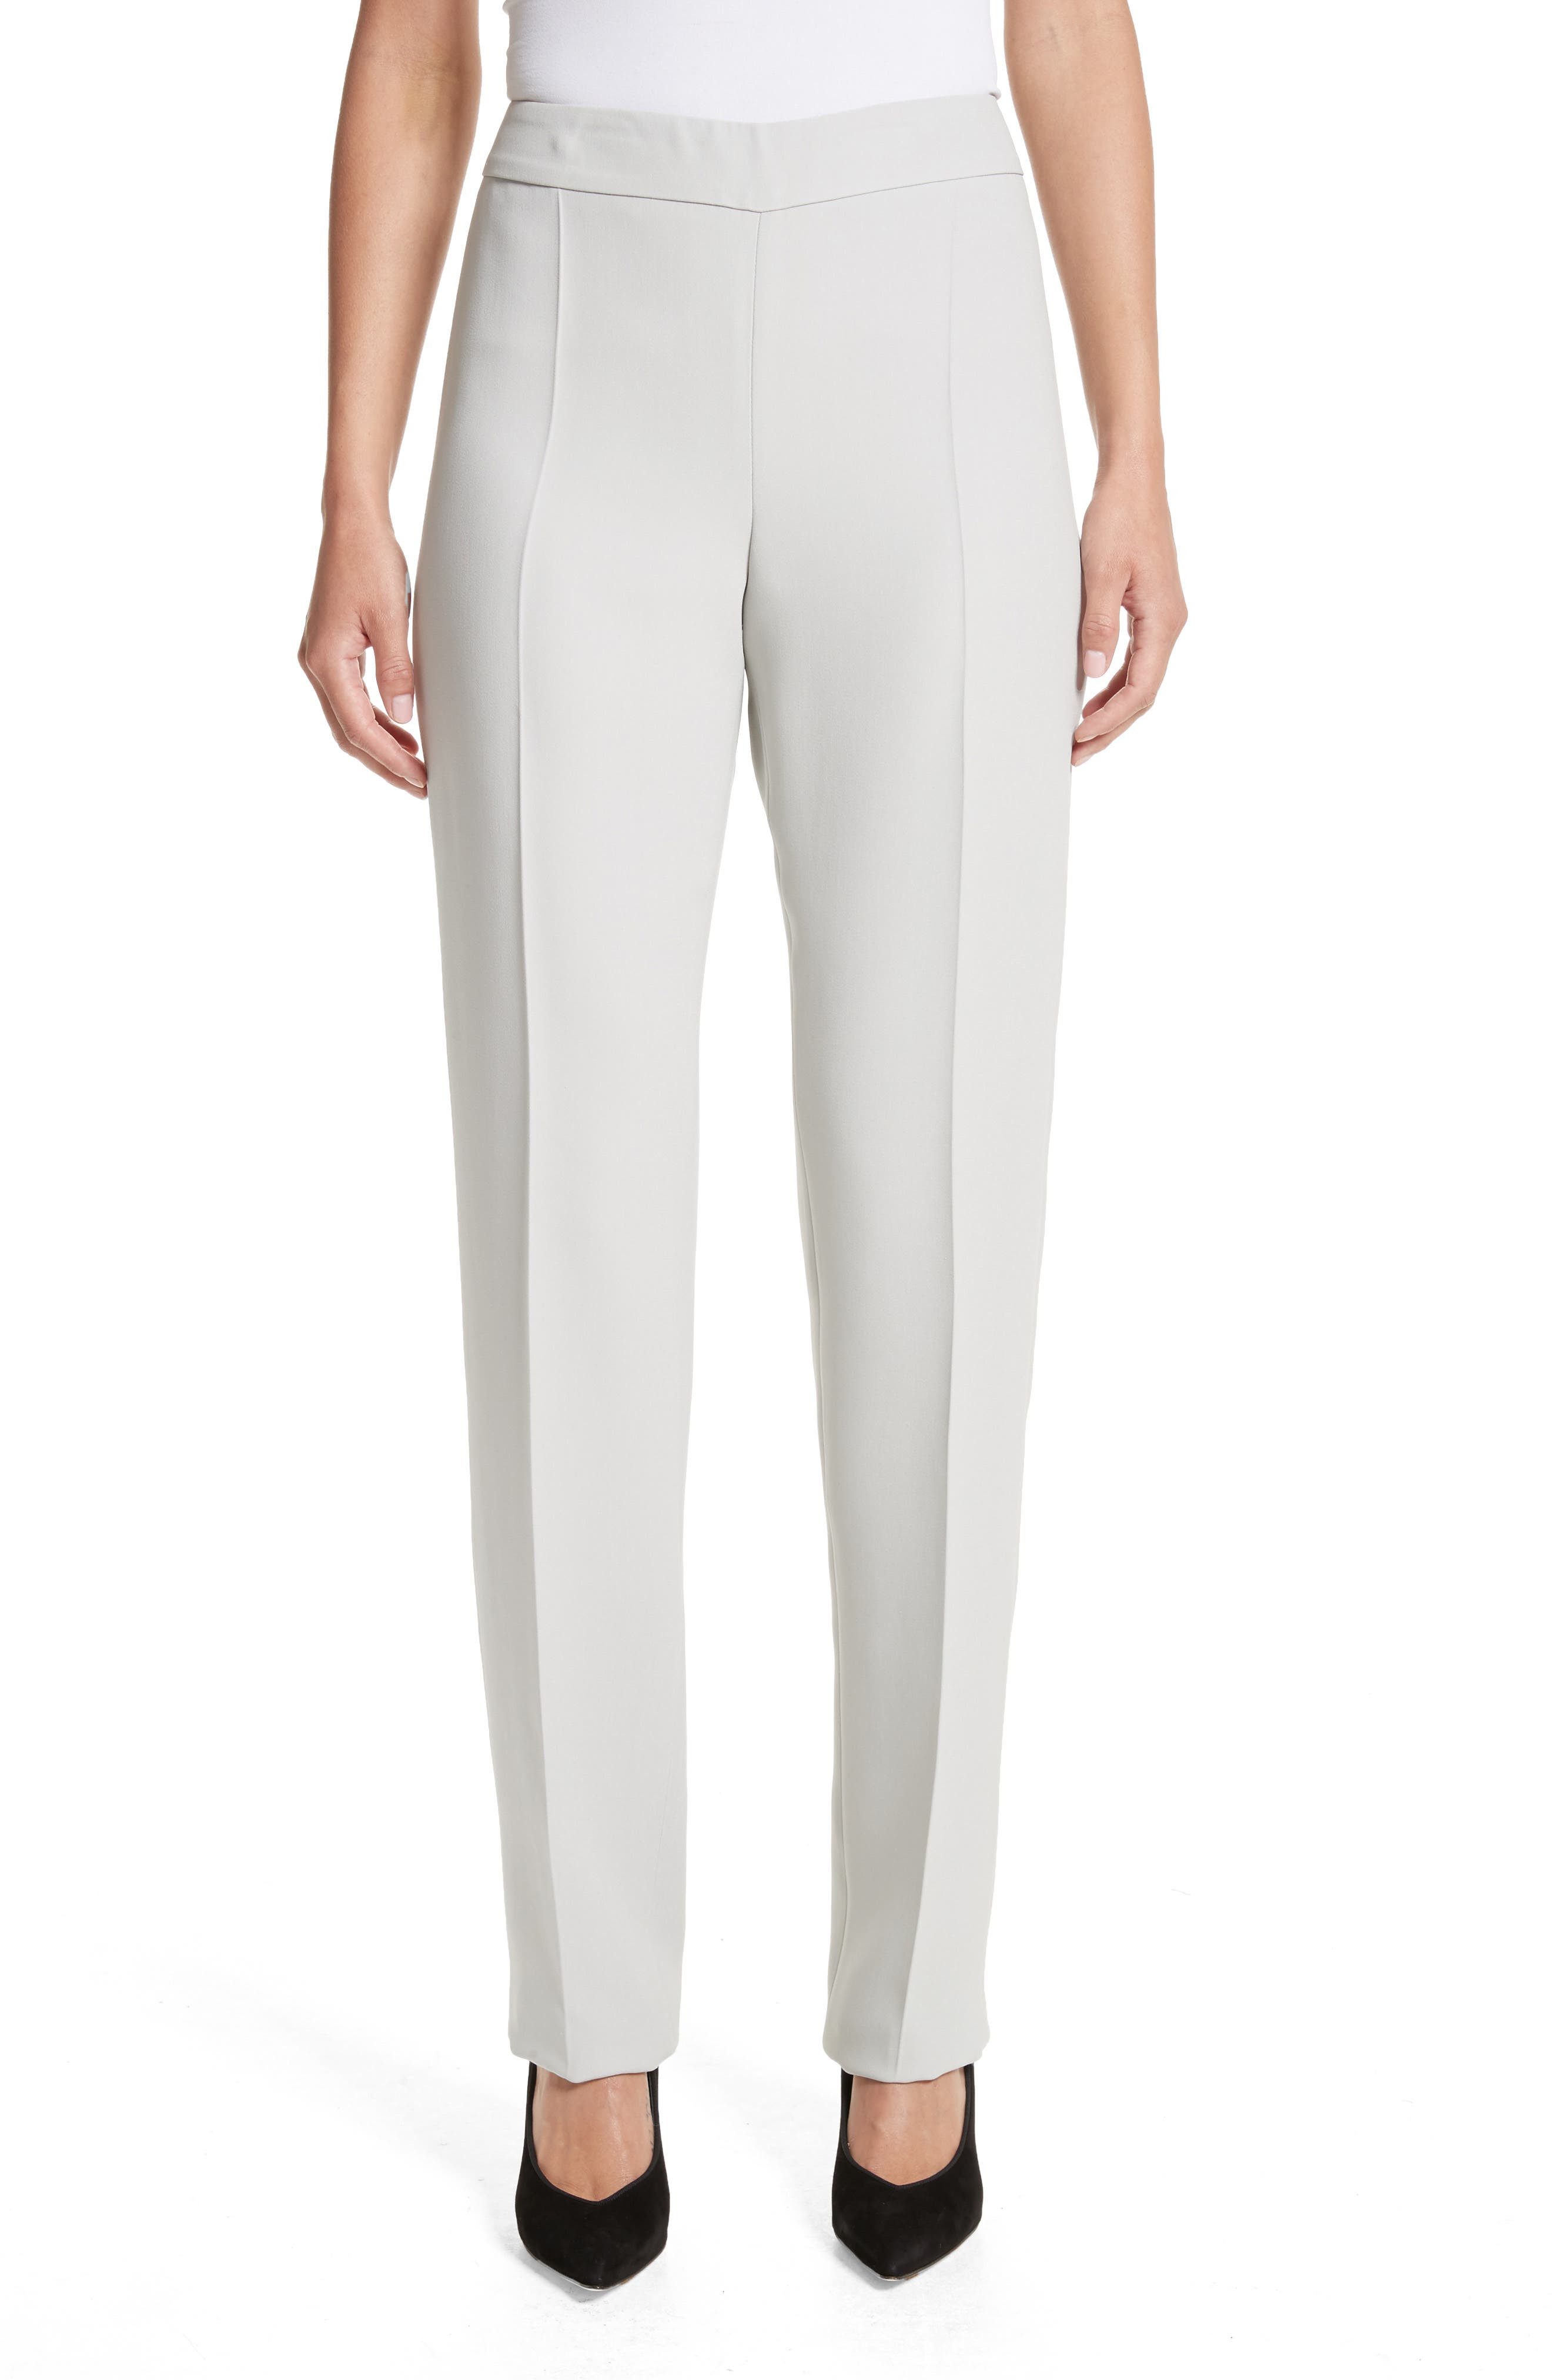 Cady Pants,                         Main,                         color, 020